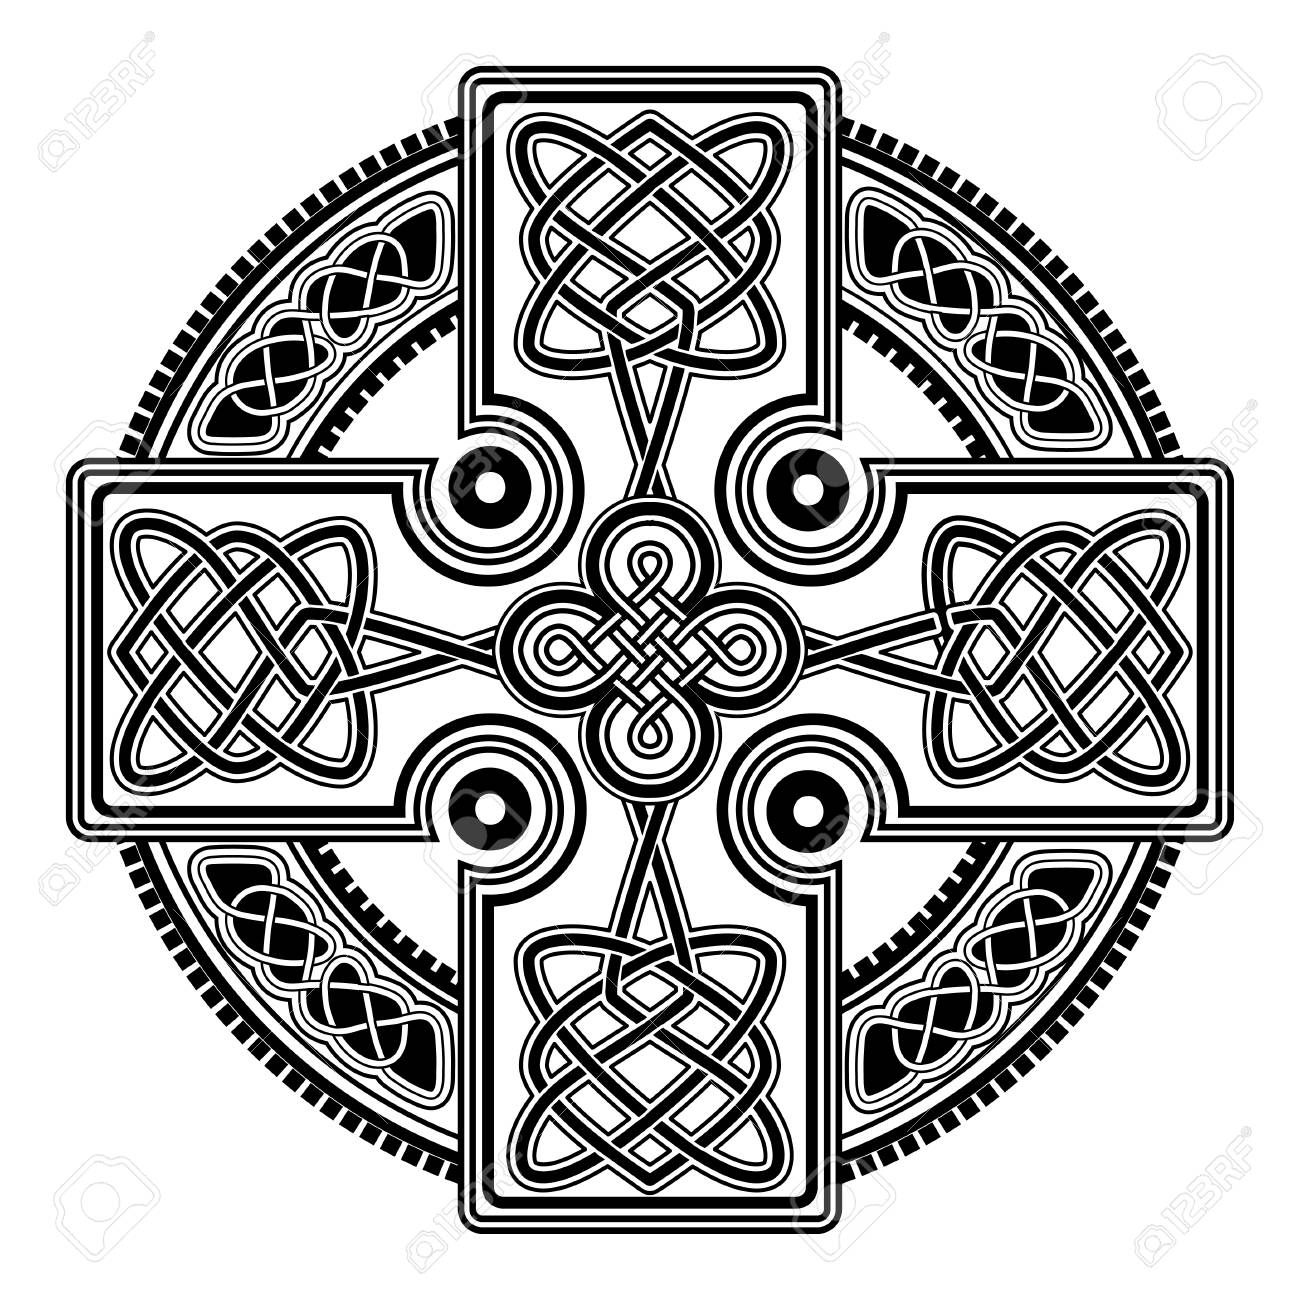 Isolated Celtic Cross From National Scandinavian Ornament Symbol